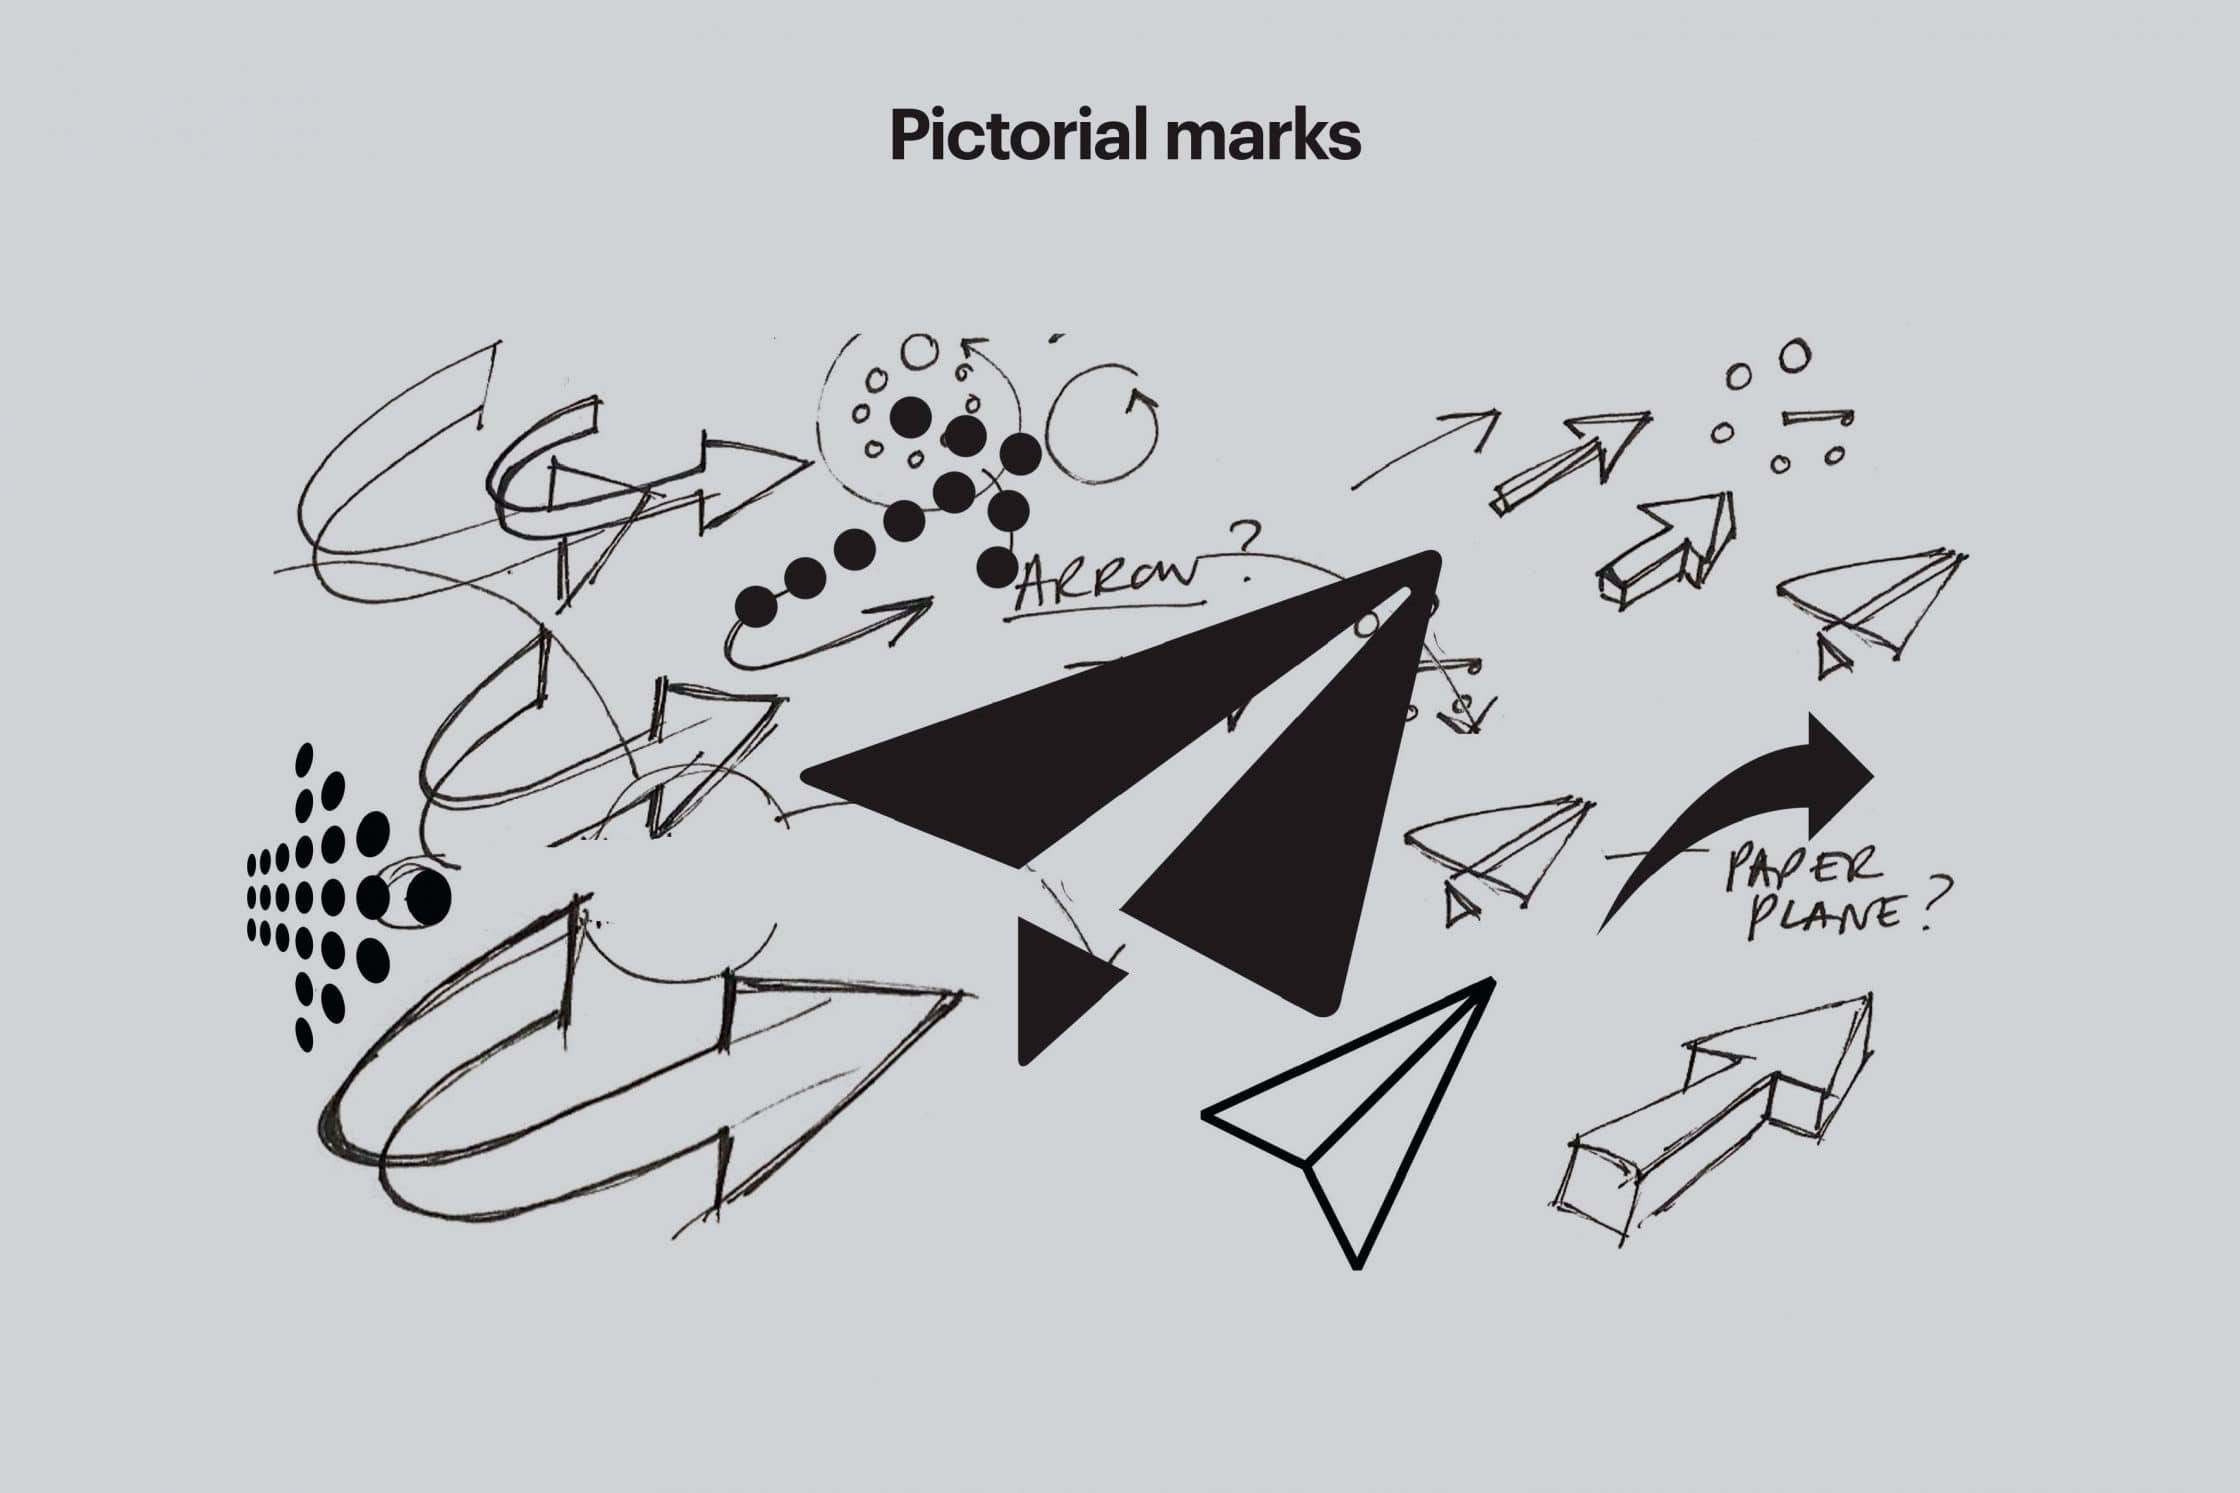 Try out different pictorial marks to find the preferred ones.